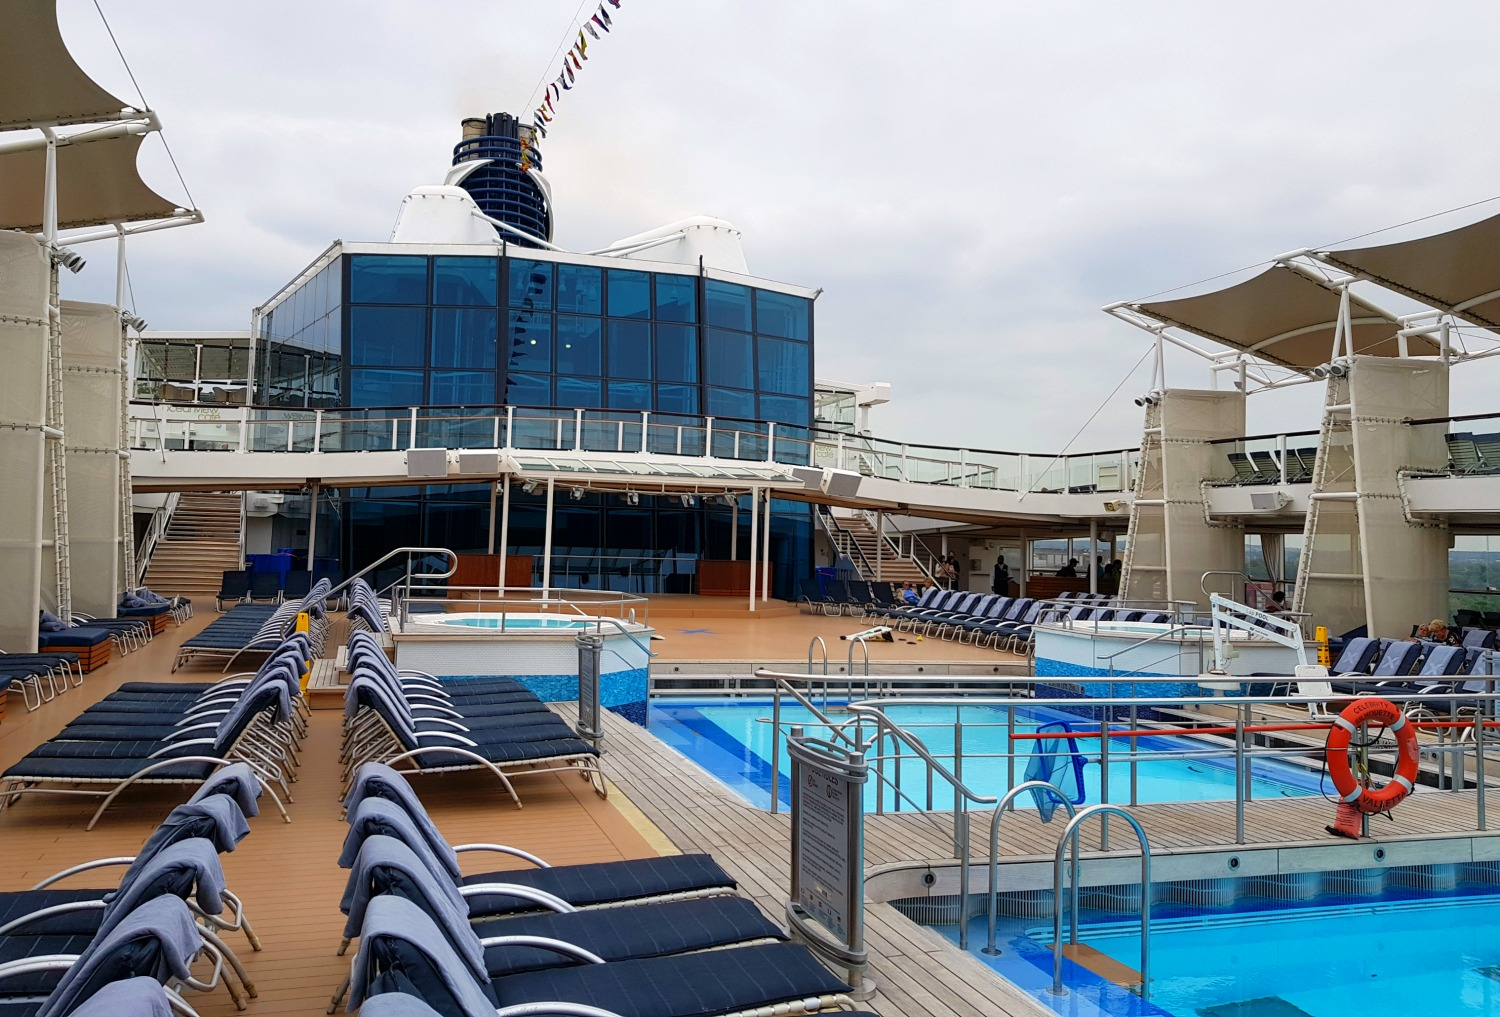 The pool desk of Celebrity Silhouette on a cloudy day - testing out Anturus Explorer Academy kids club activities from Celebrity Cruises